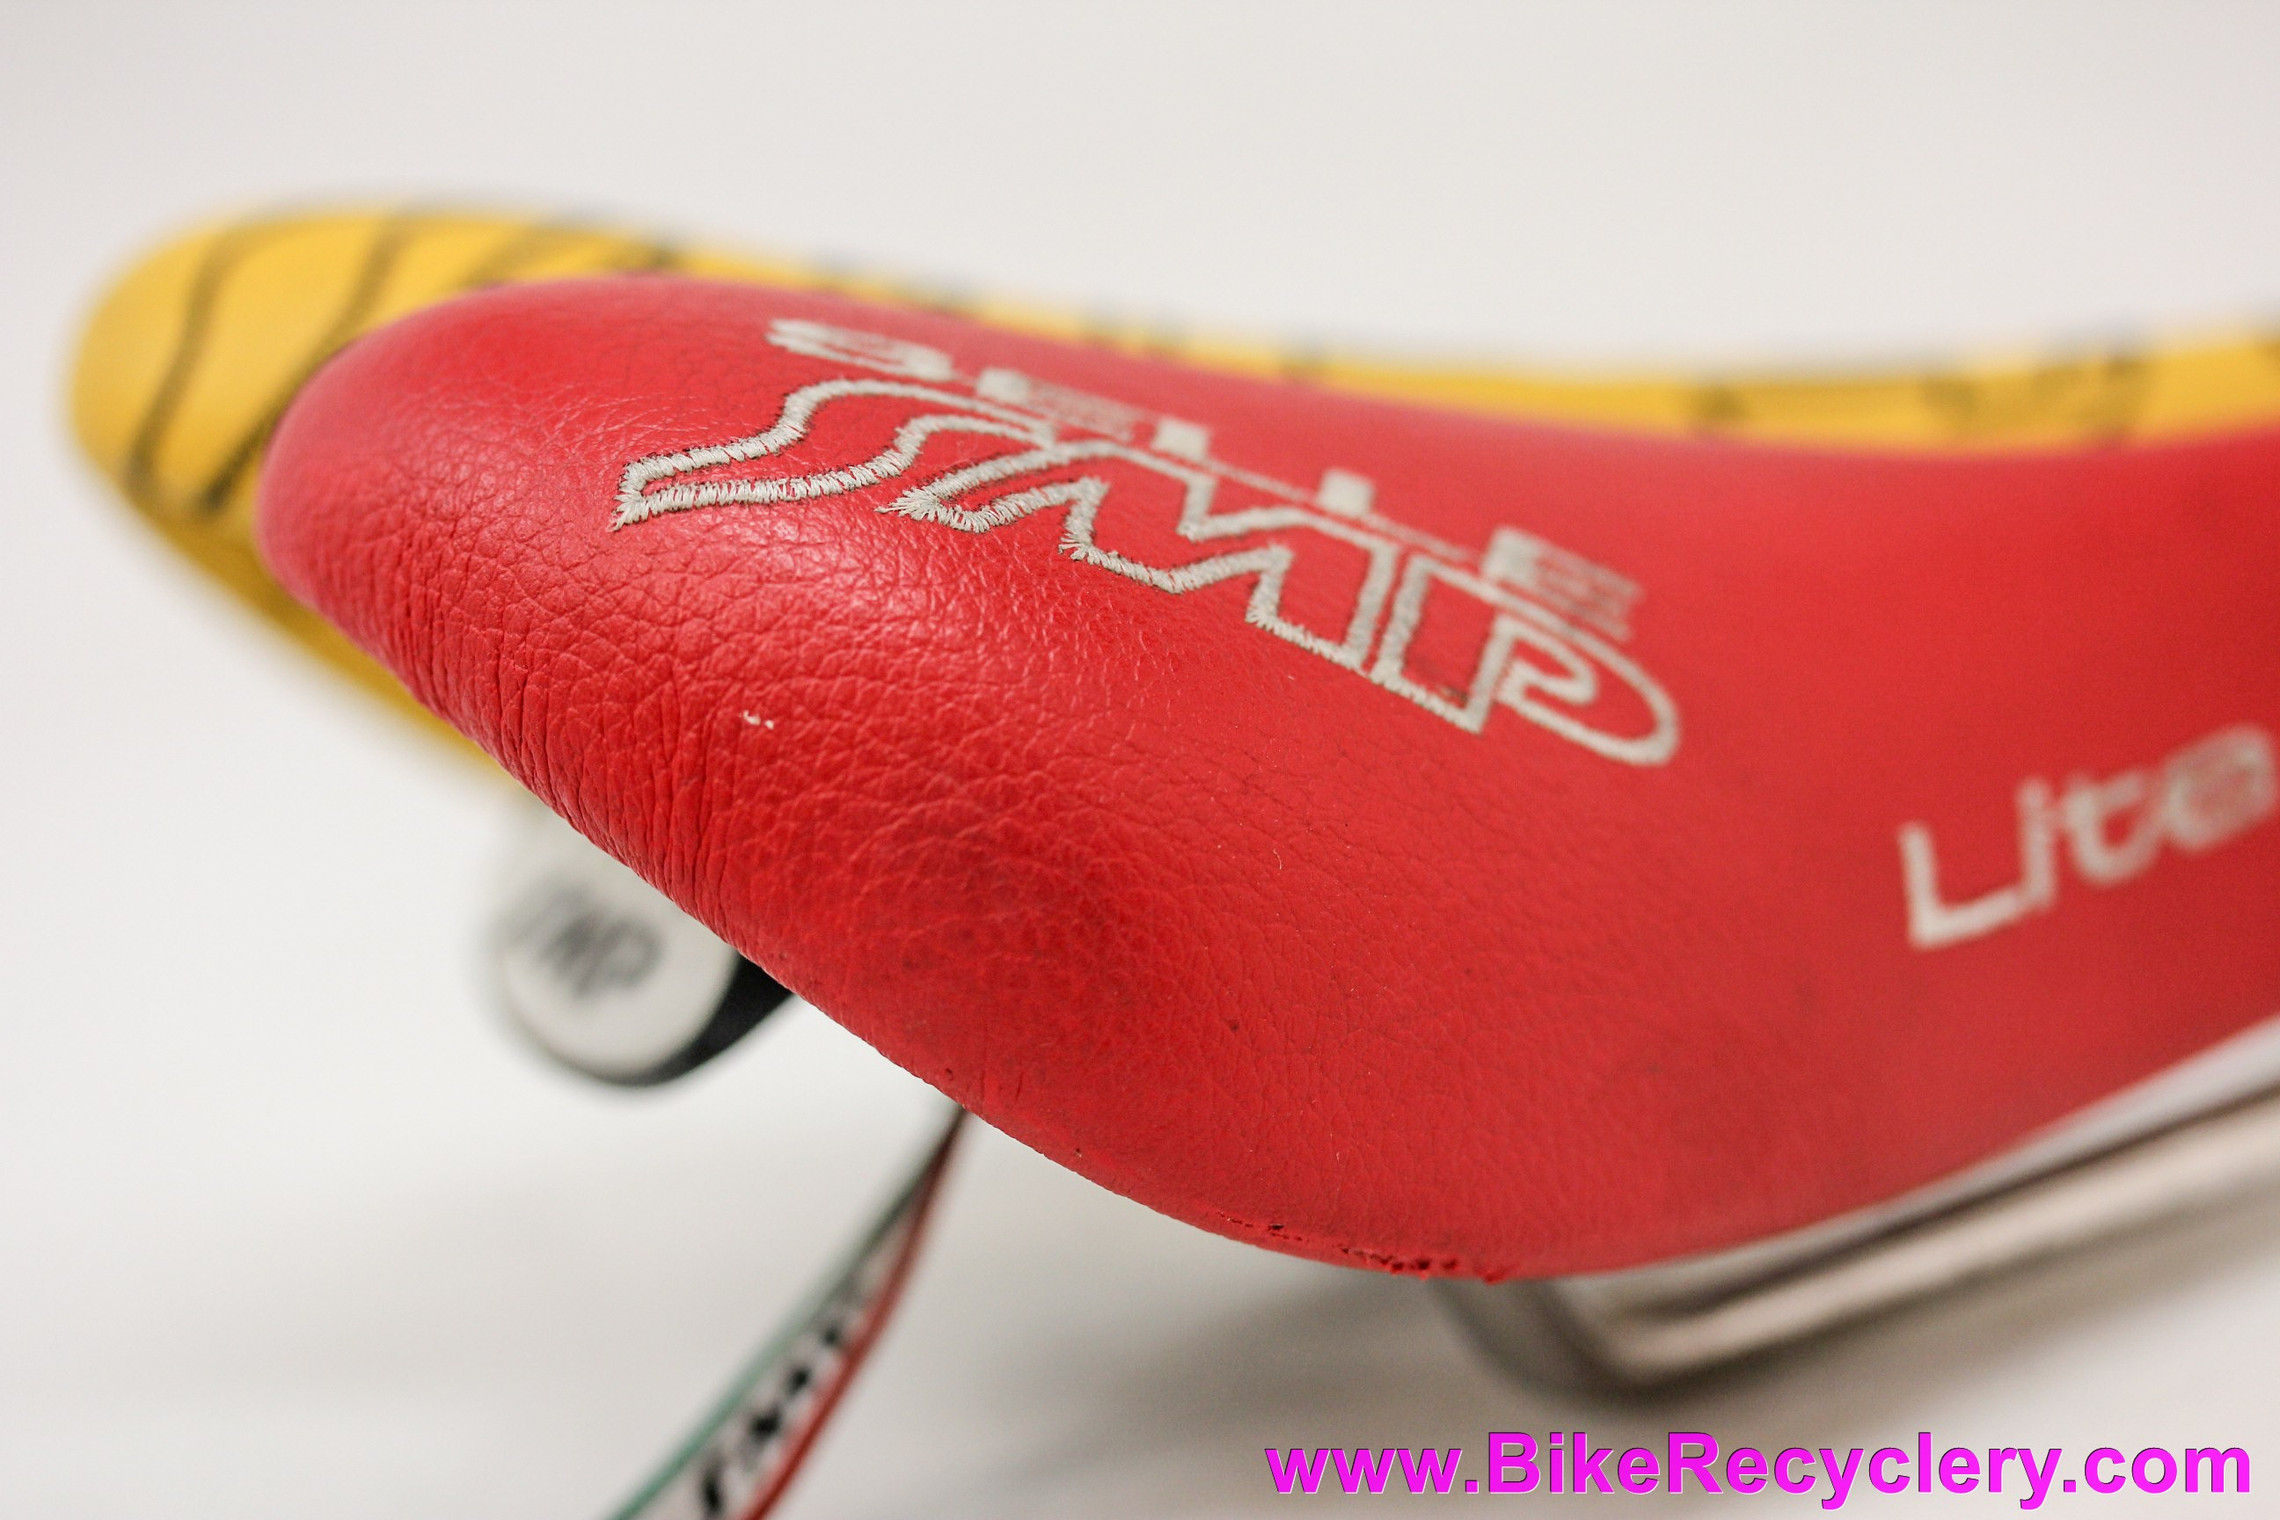 Selle SMP Lite 209 Saddle: Red & White Leather Test Version - Stainless Steel Rails (Near Mint+ Low Miles)